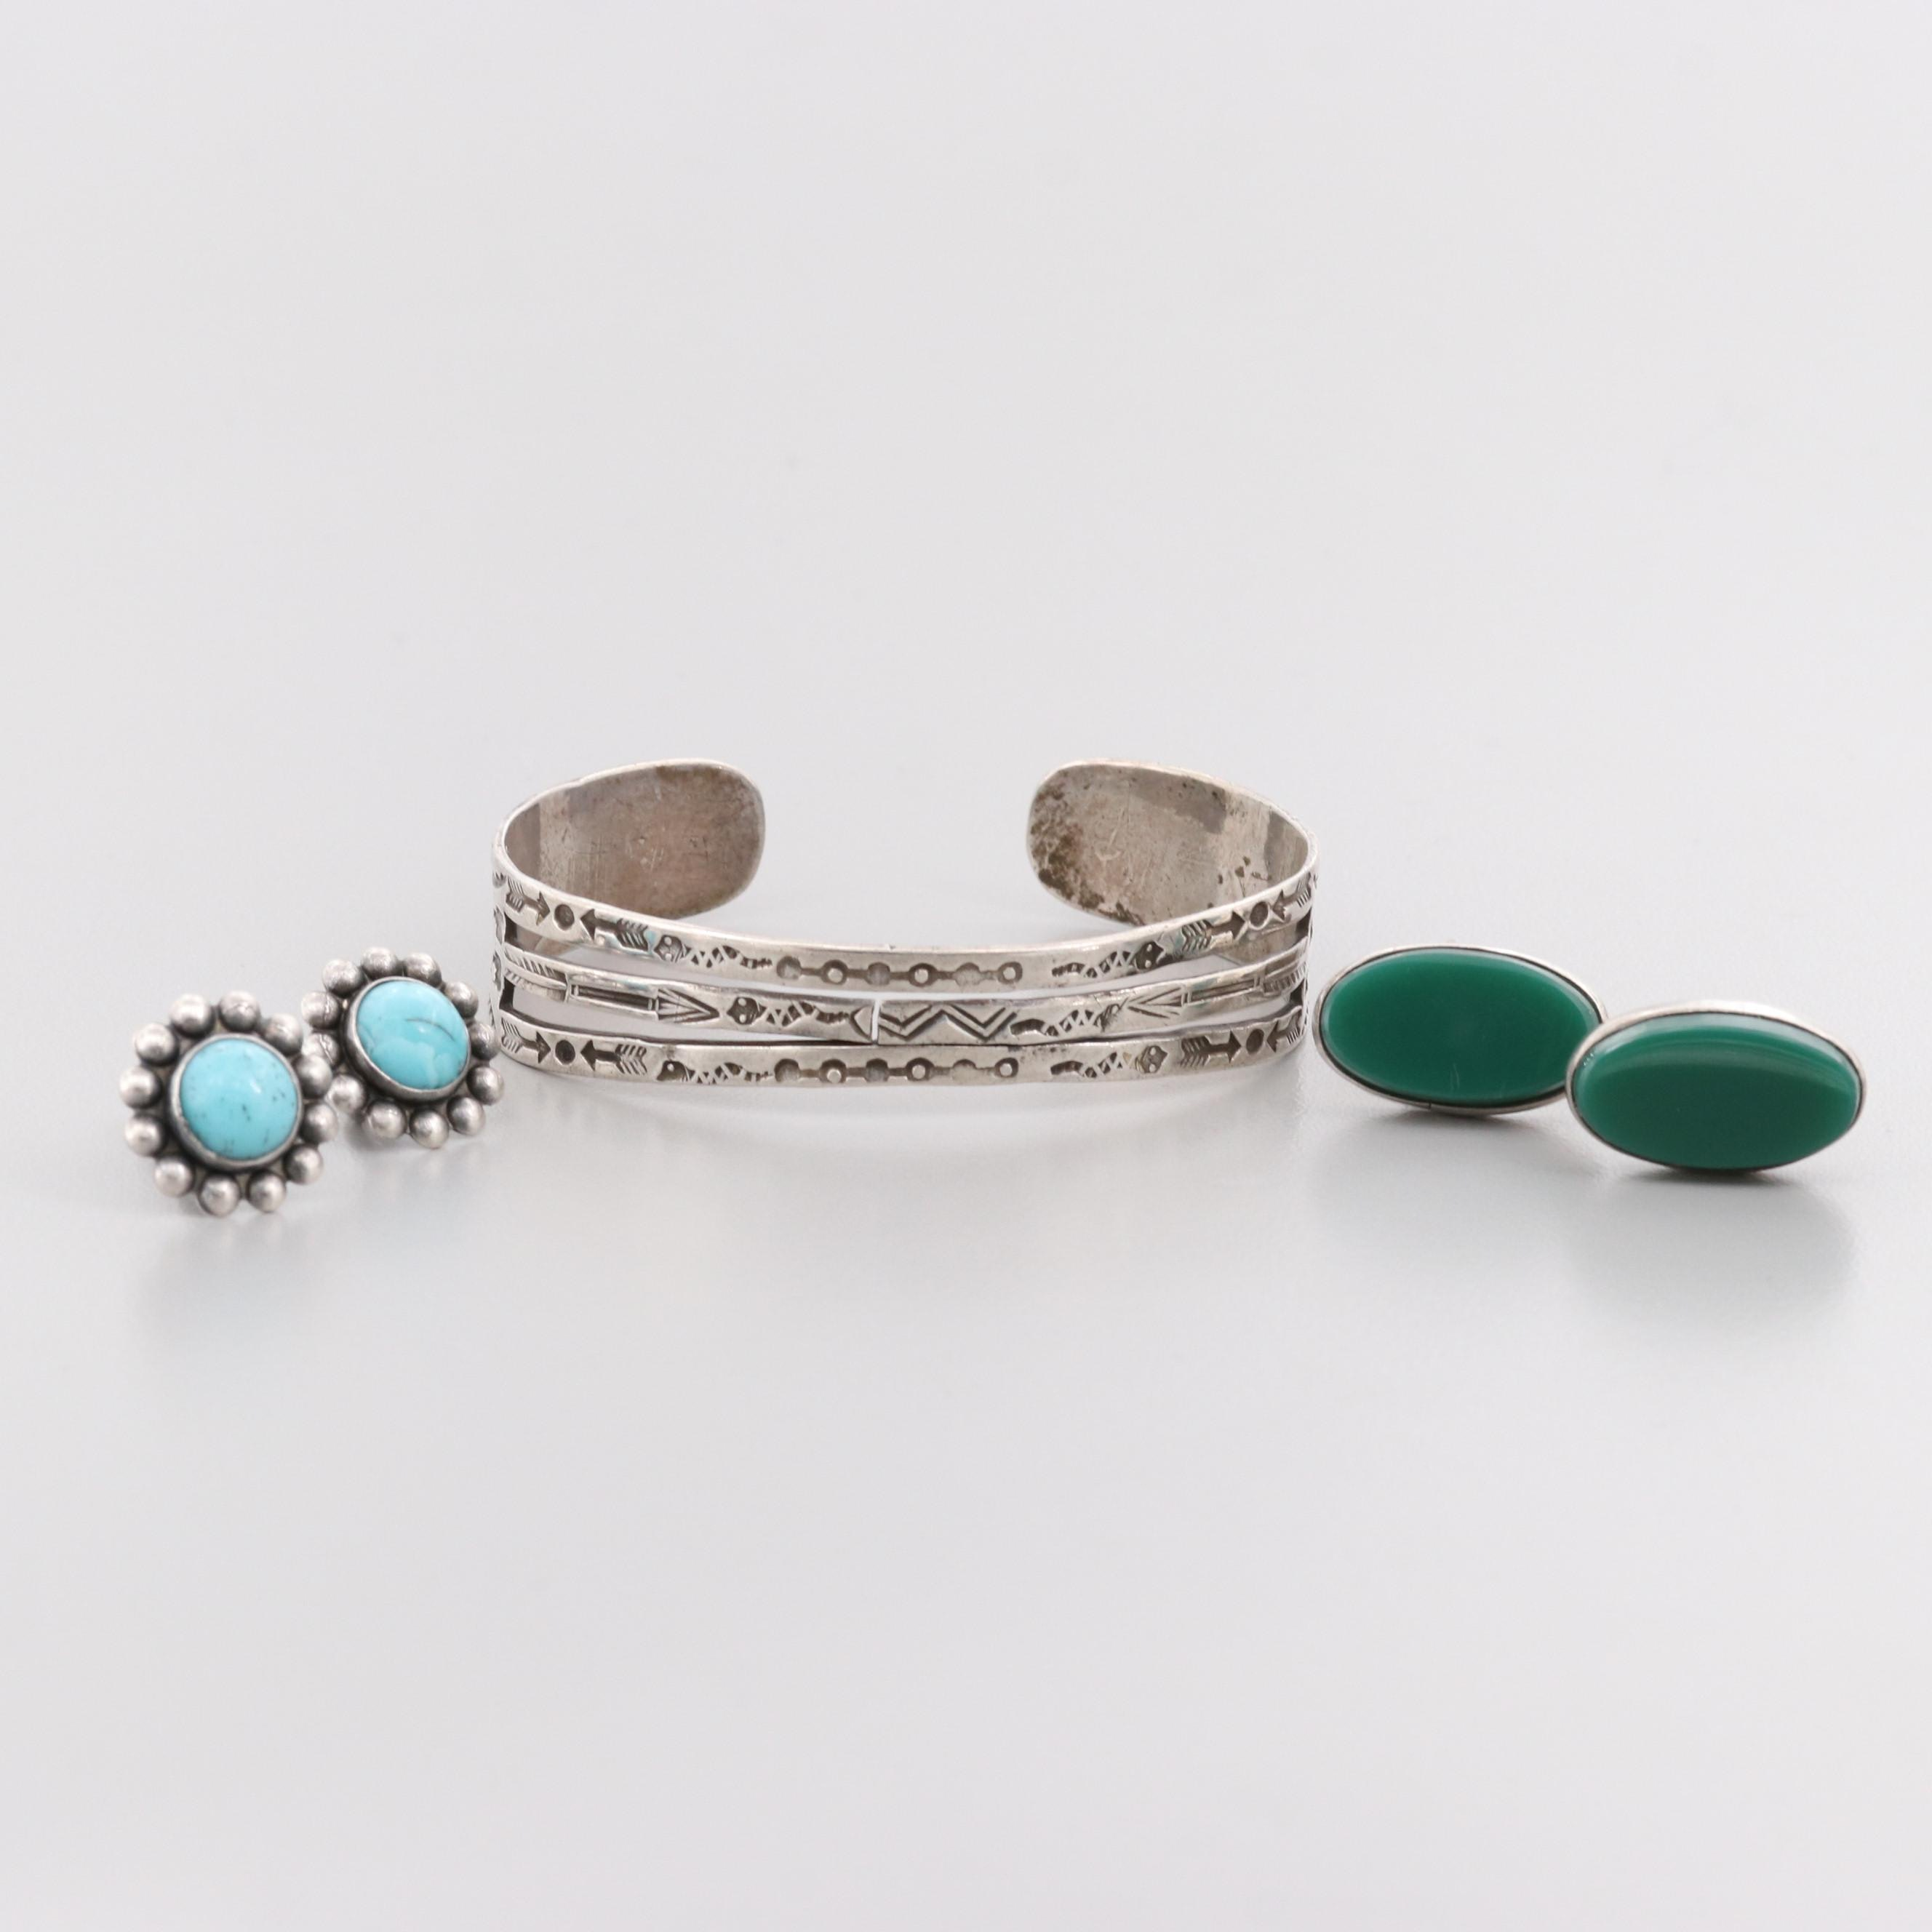 Southwestern and Mexican Sterling Silver Jewelry Including Glass